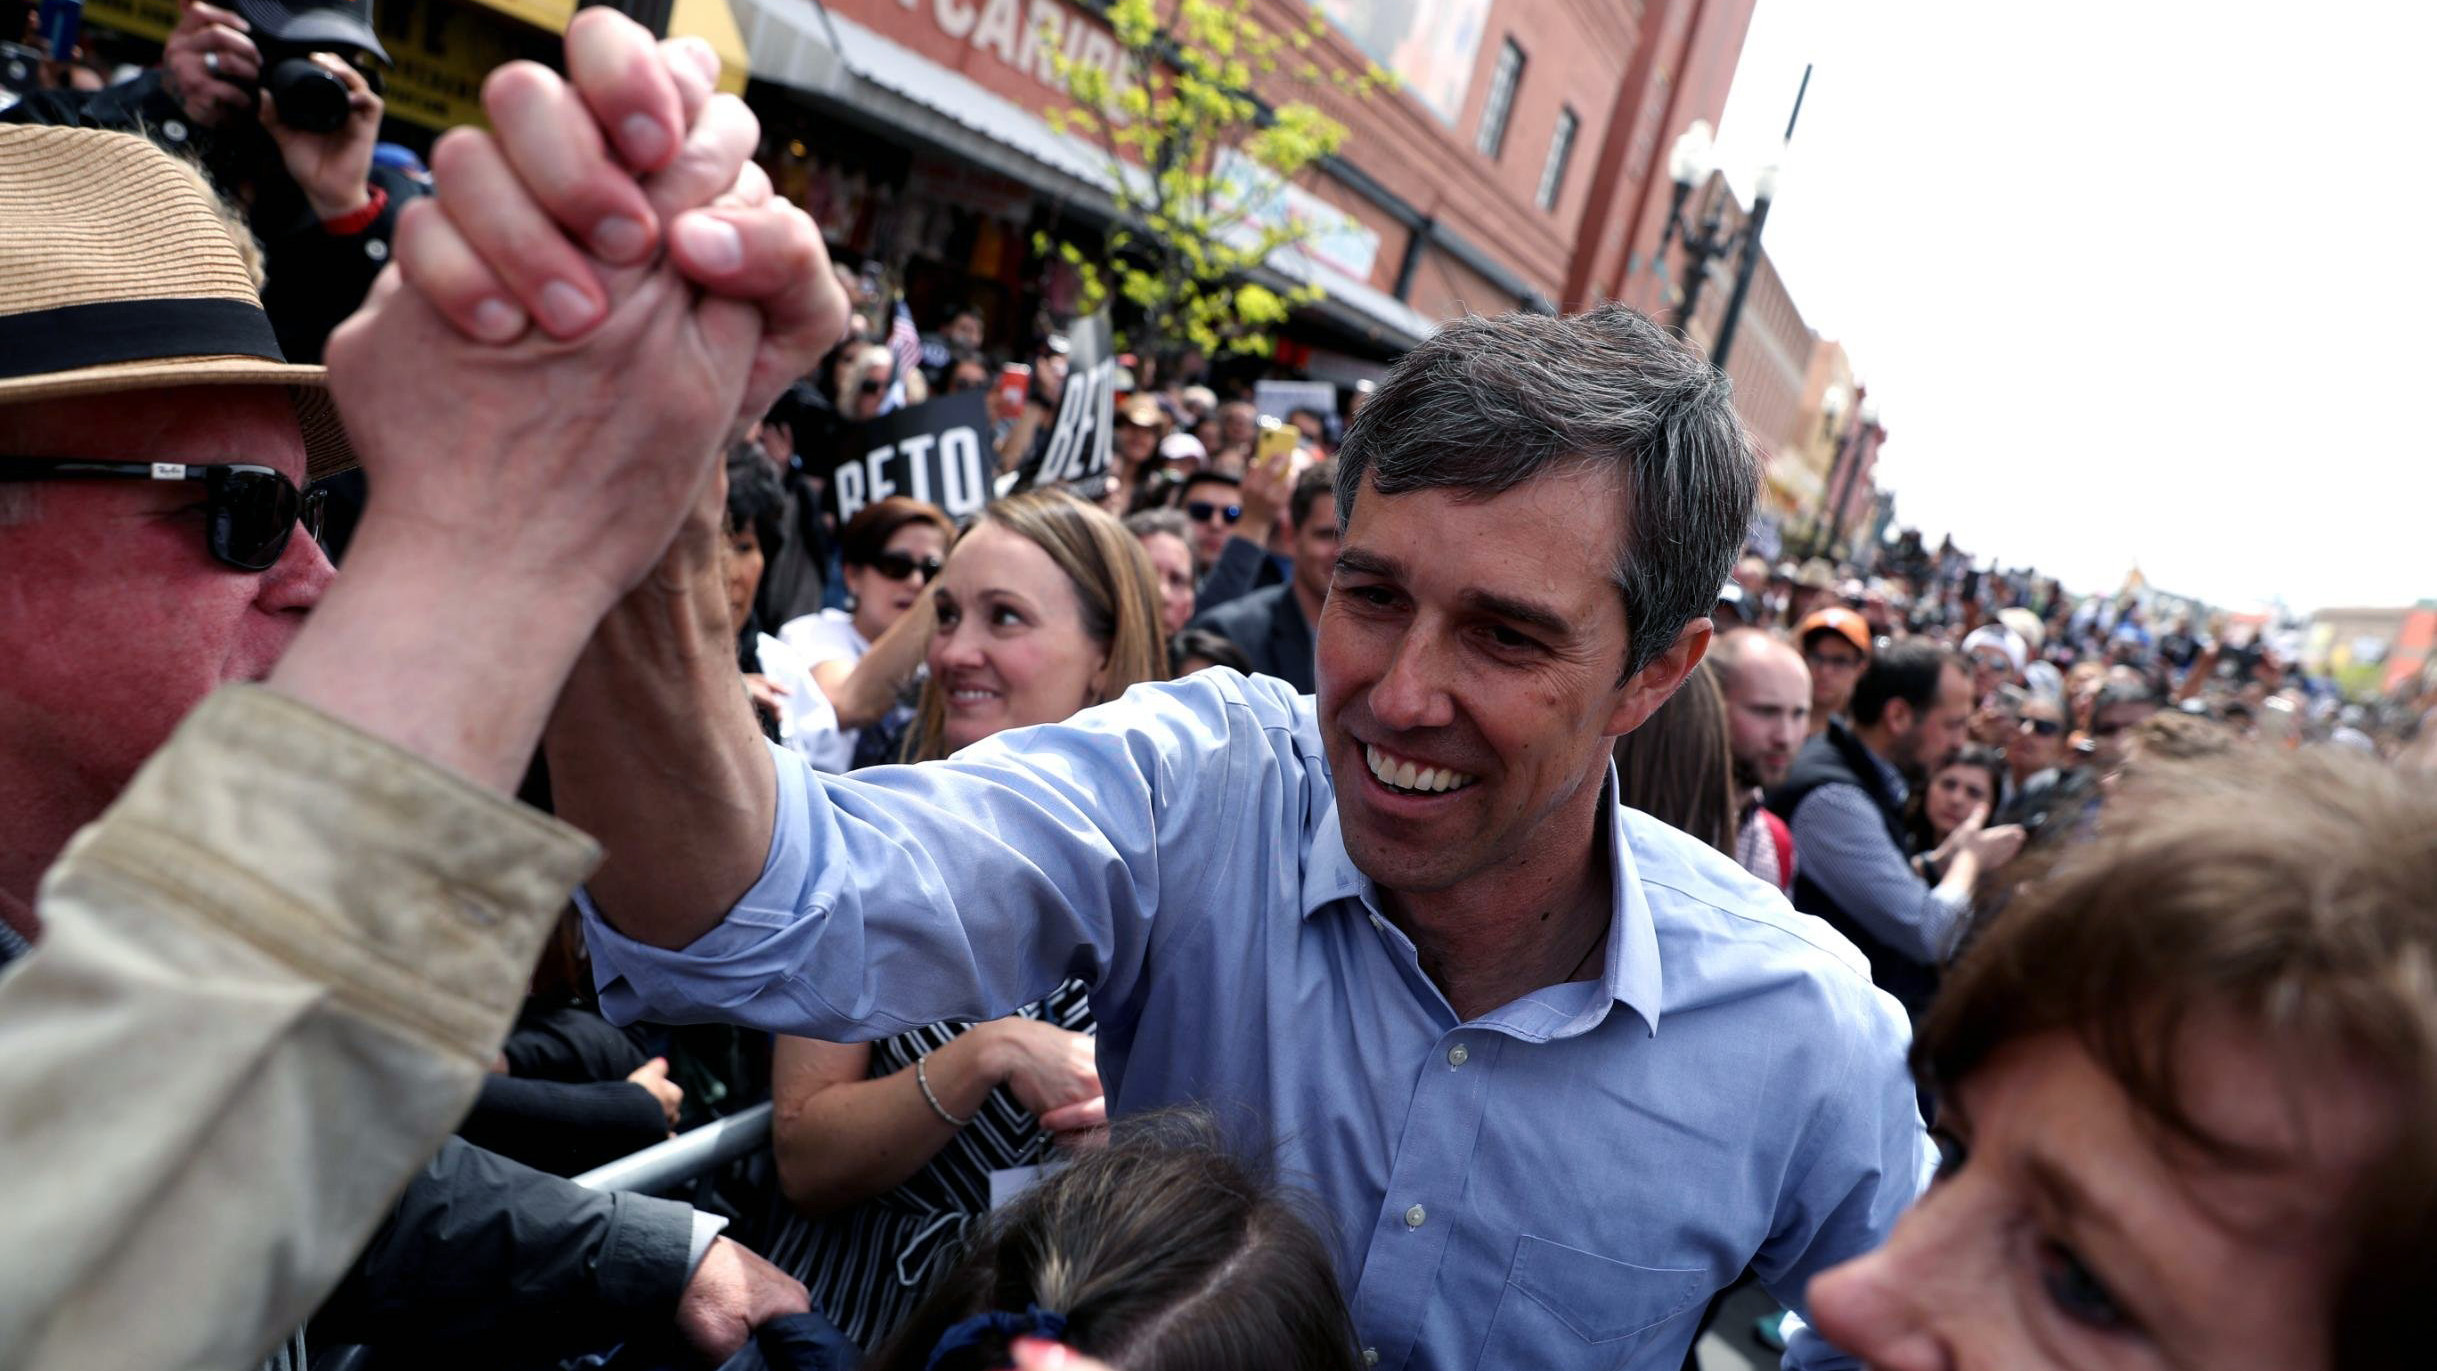 Beto O'Rourke reportedly plans to announce that he'll run for Texas governor 3